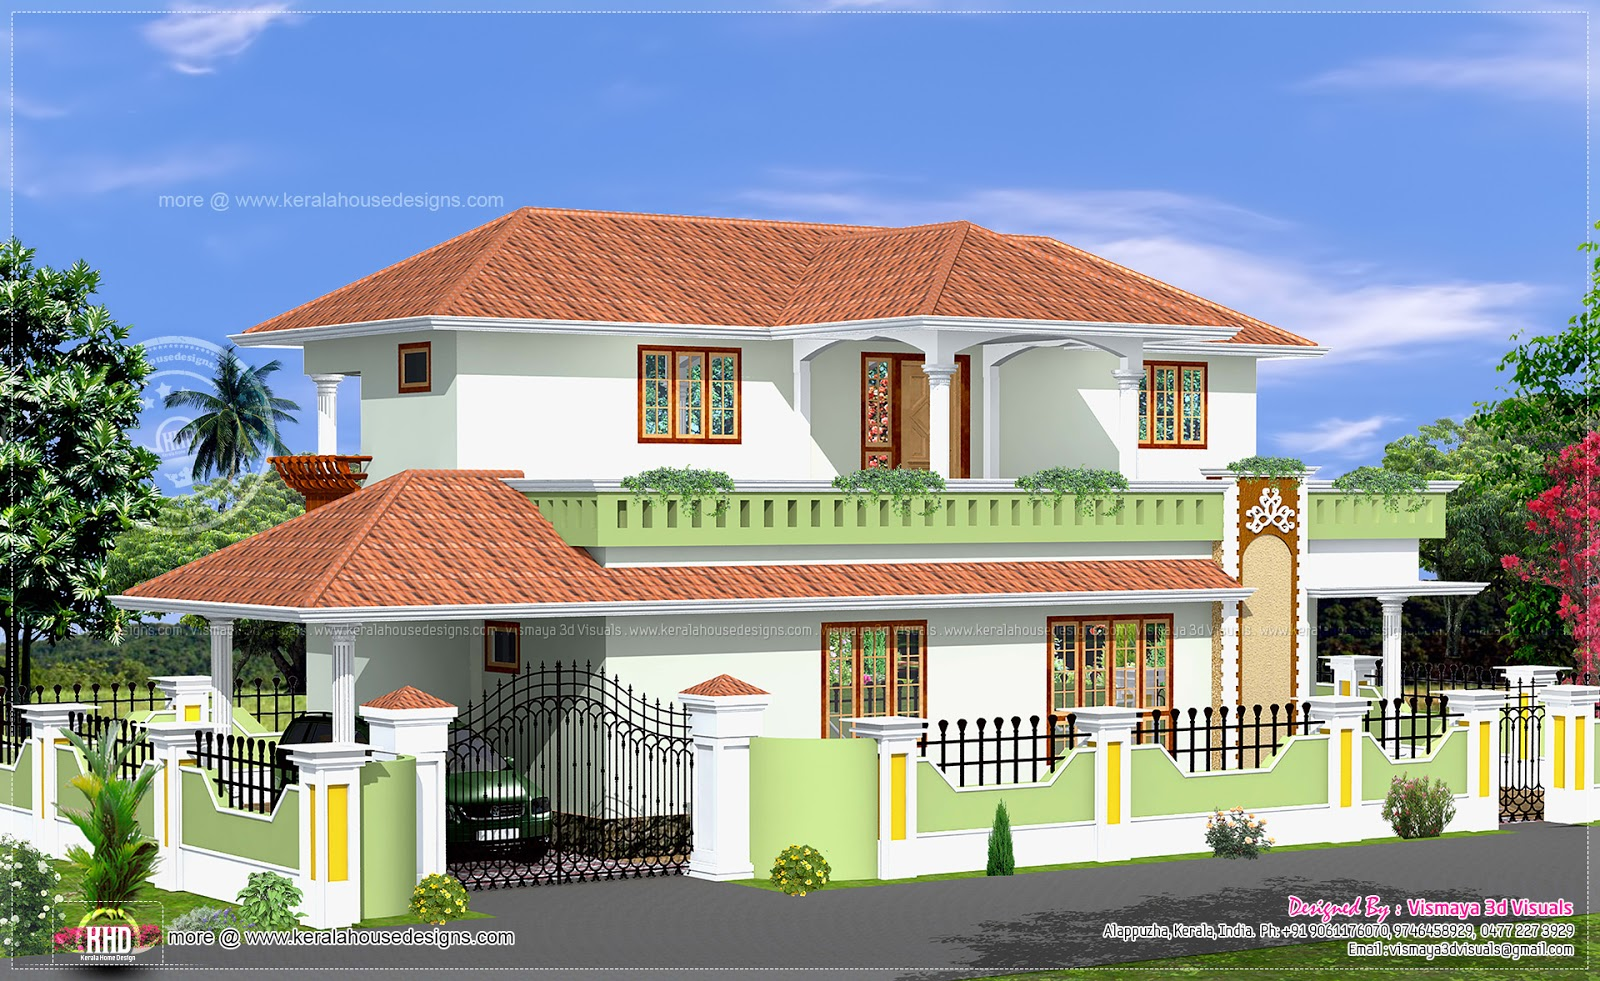 Simple house designs kerala style home design and style for Picture of simple house